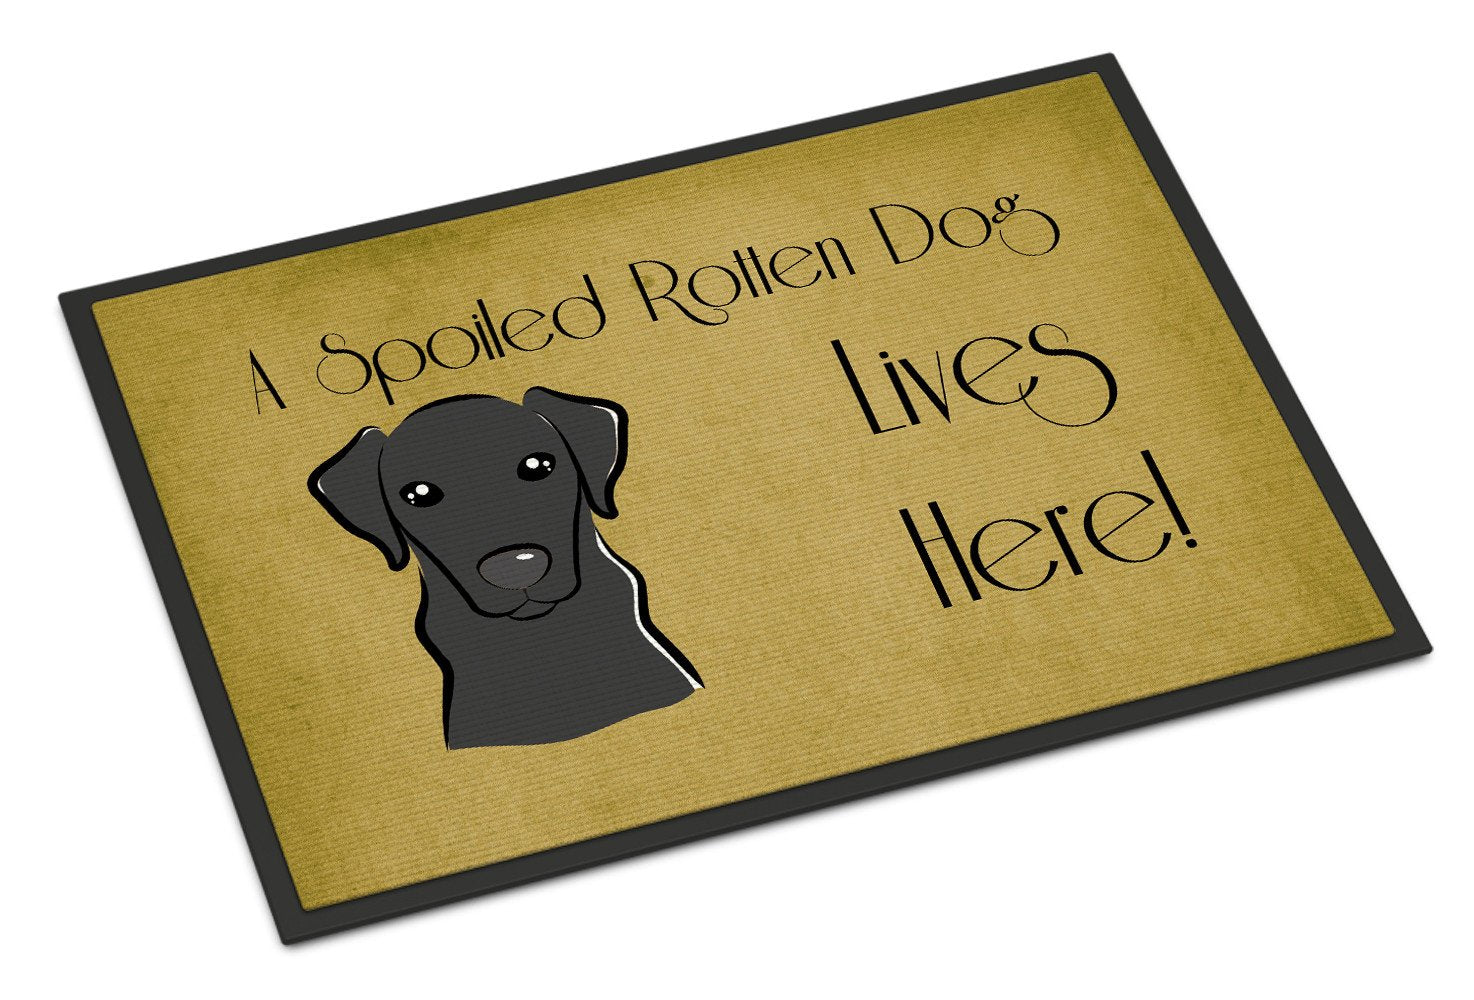 Black Labrador Spoiled Dog Lives Here Indoor or Outdoor Mat 18x27 BB1483MAT - the-store.com